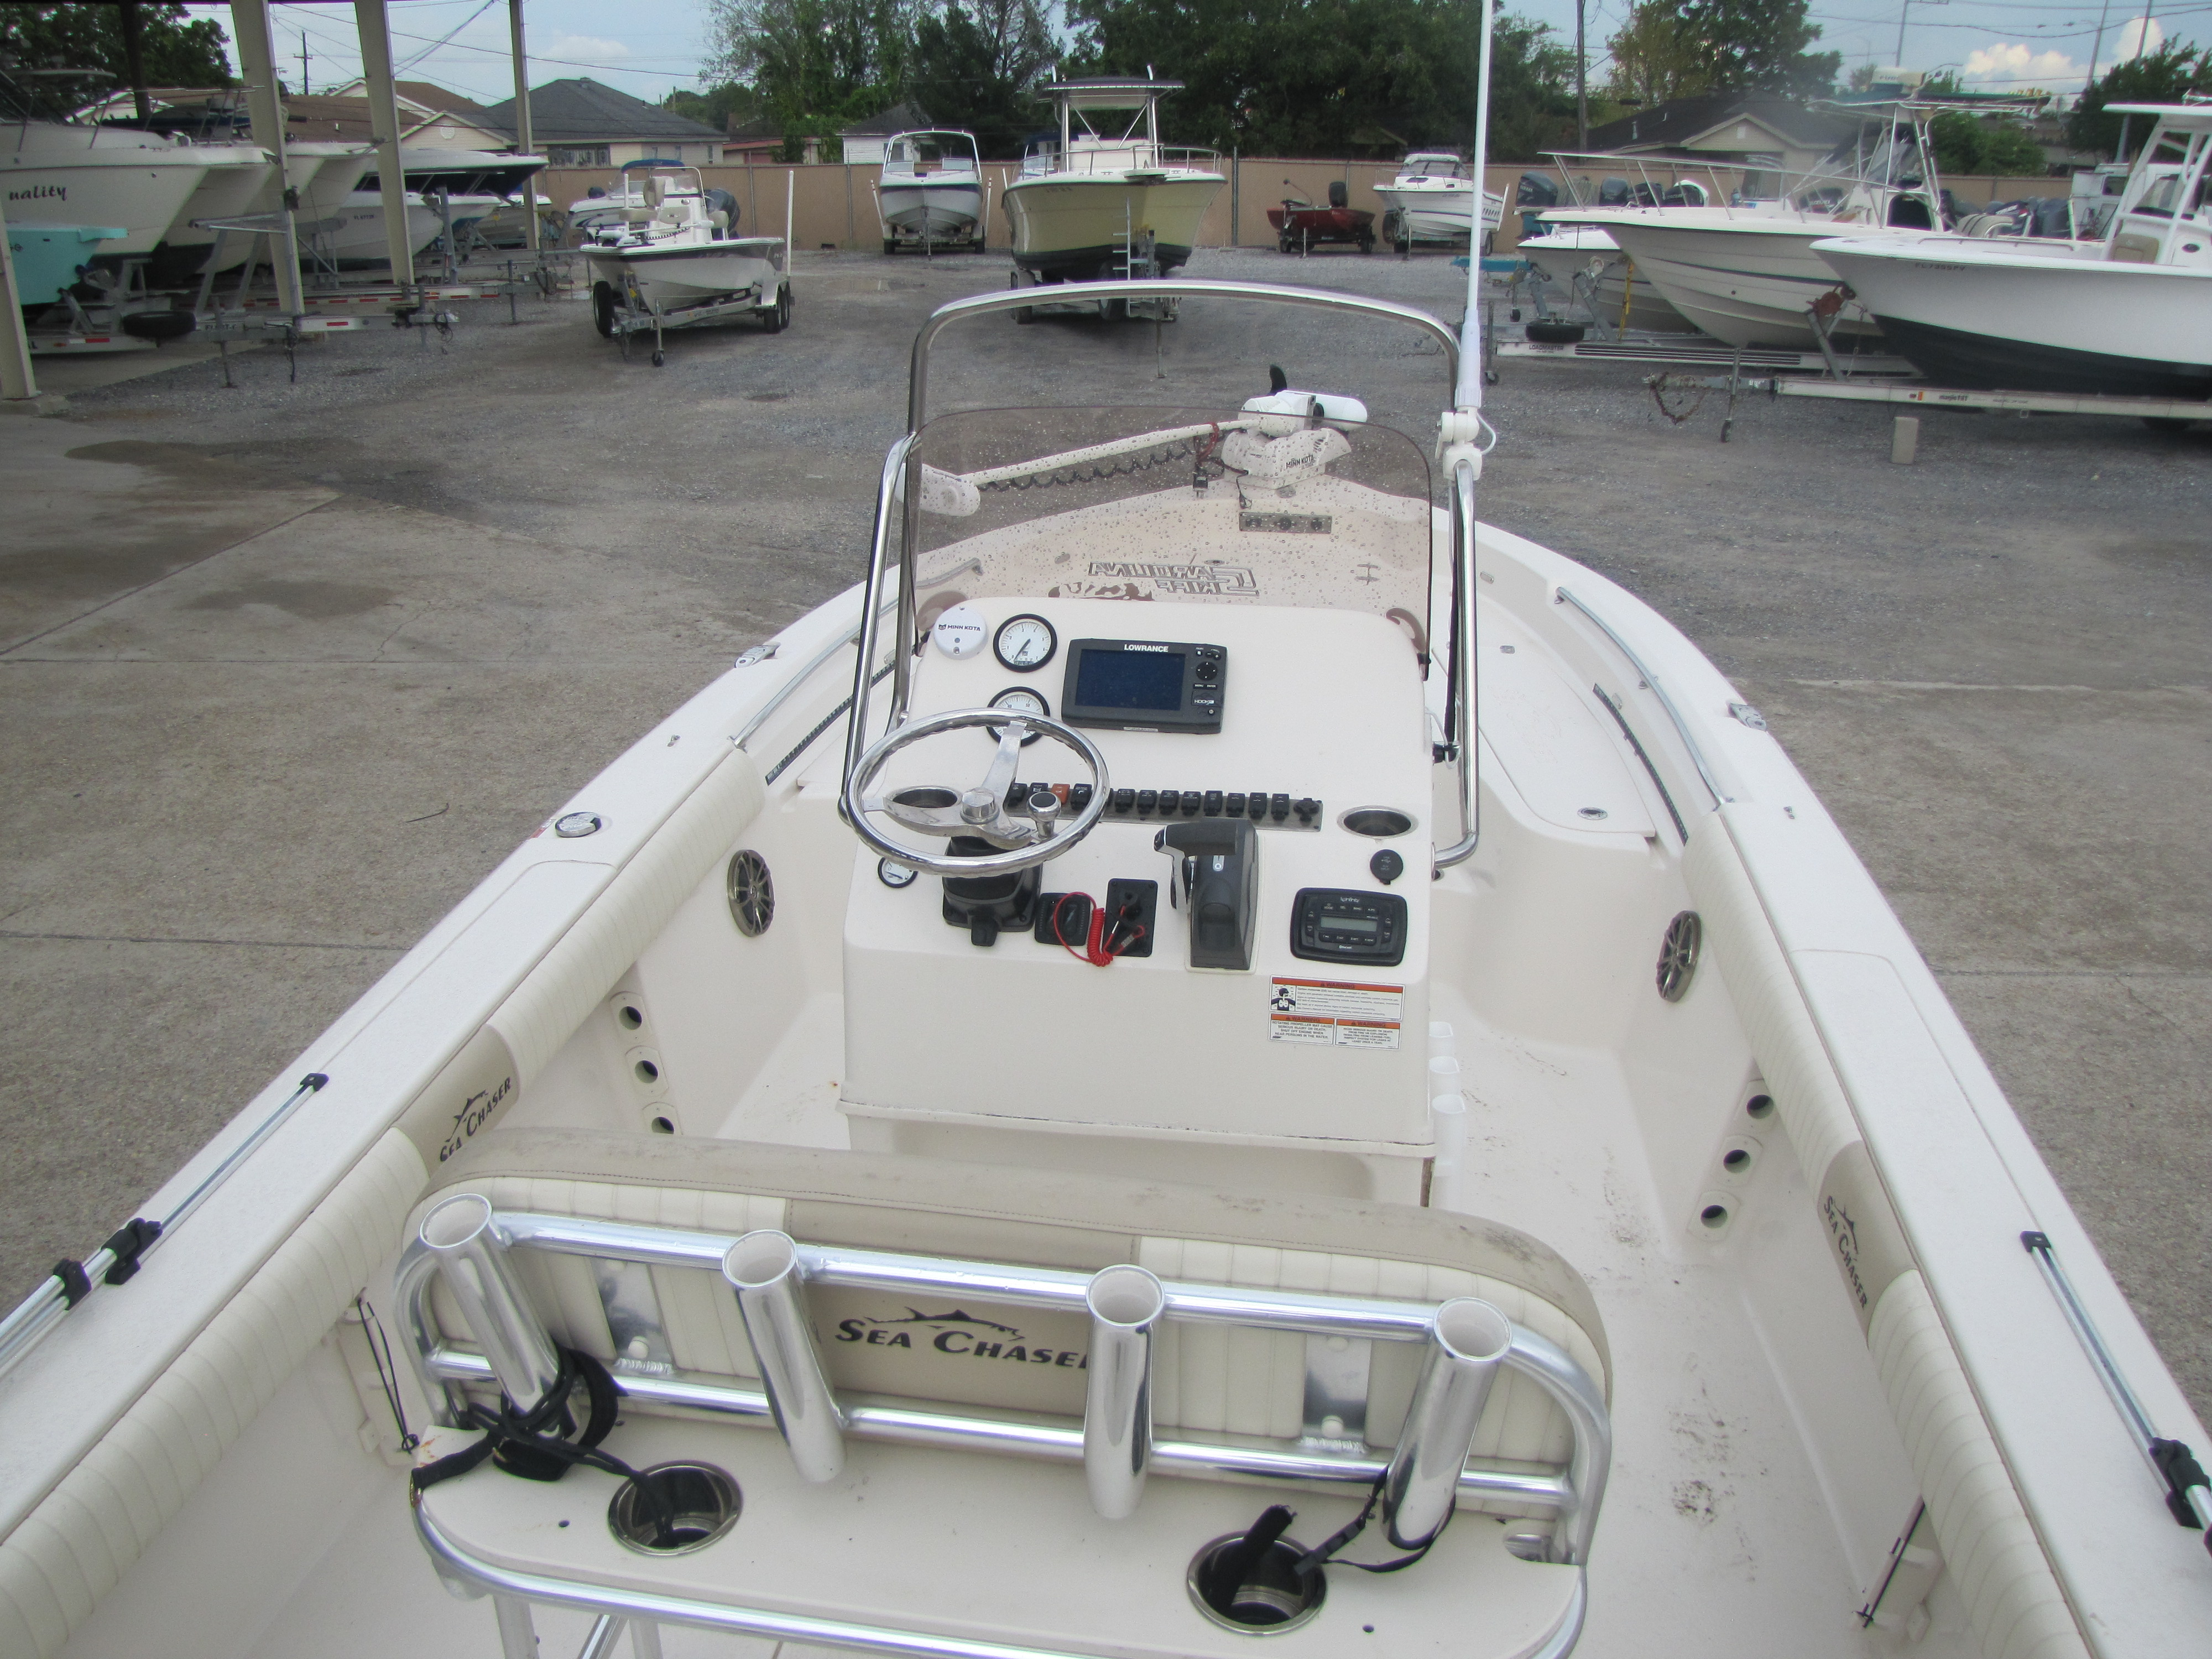 2018 Sea Chaser boat for sale, model of the boat is 23 LX & Image # 17 of 19